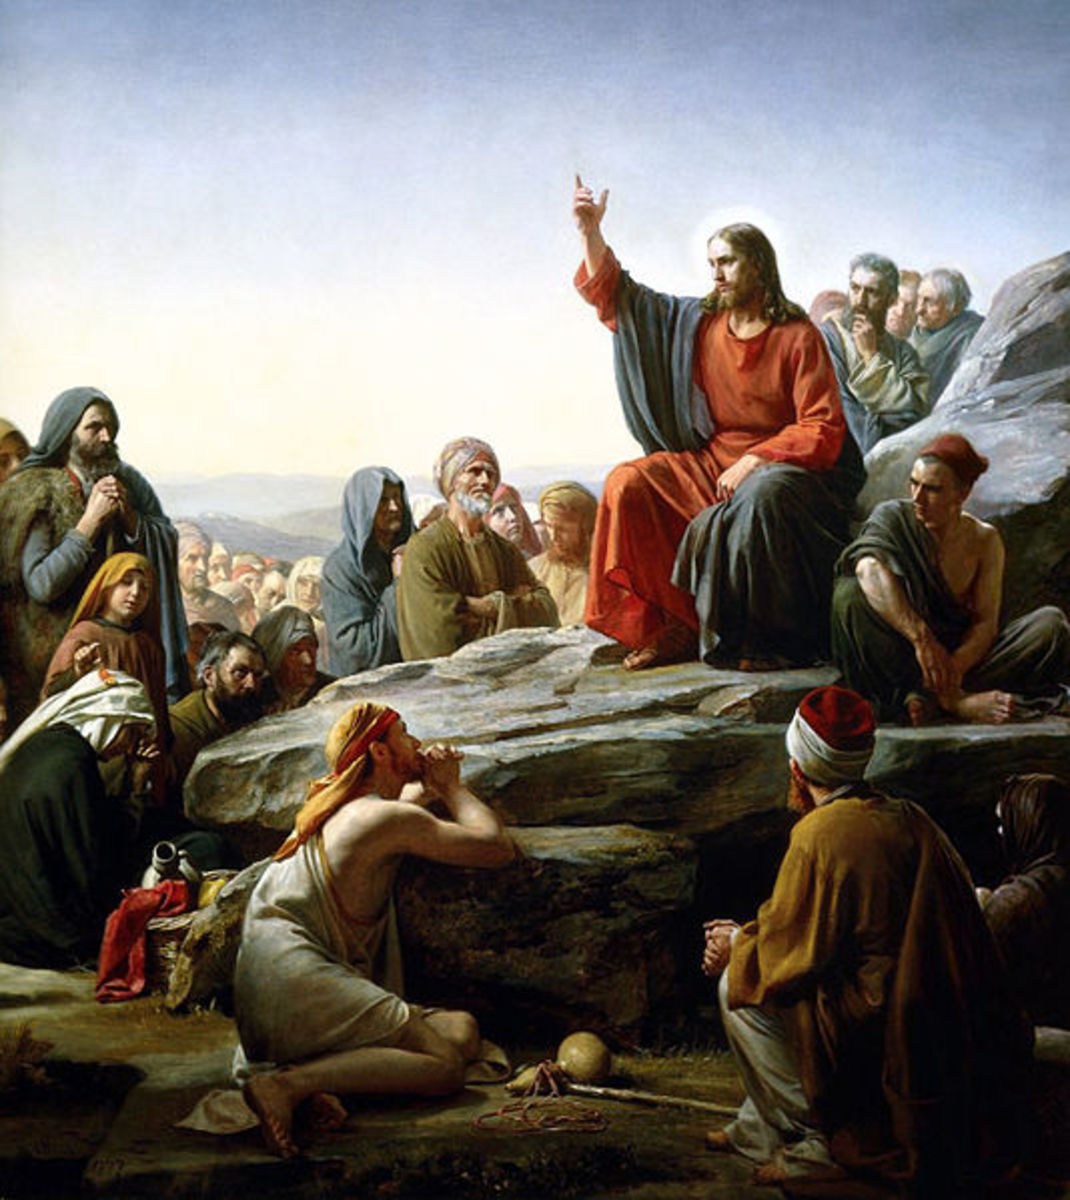 Jesus Christ delivering his famous Sermon on the Mount at a time when the Roman Empire was at the height of its power.